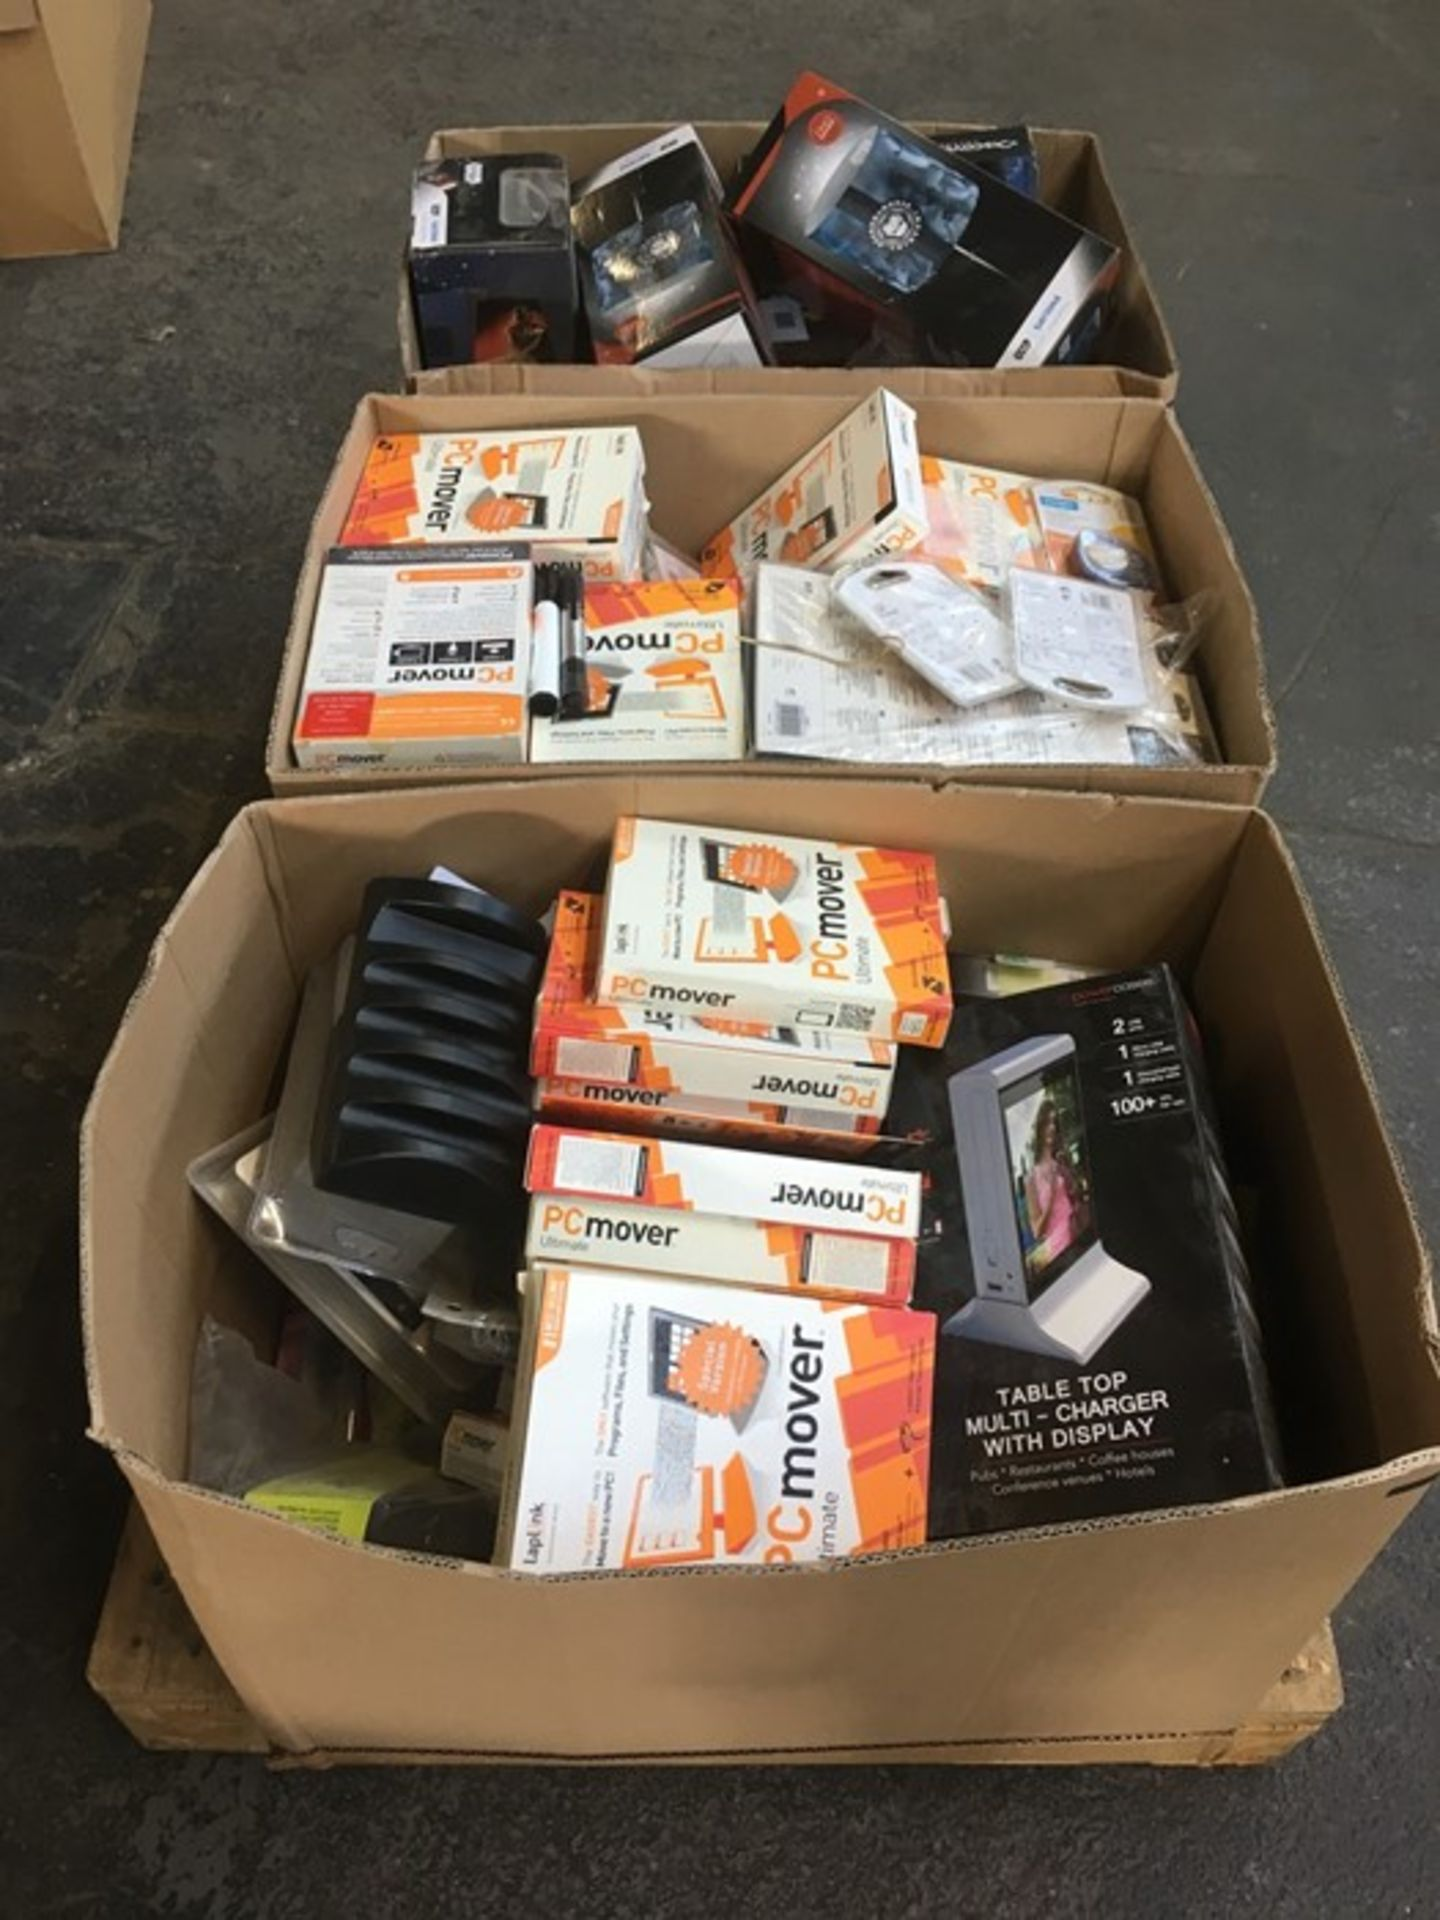 Lotto 38 - 1 LOT TO CONTAIN ASSORTED RANDOM ITEMS / INCLUDING BOOKS, PC MOVER SOFTWARE AND MUGS / PN - 671 (